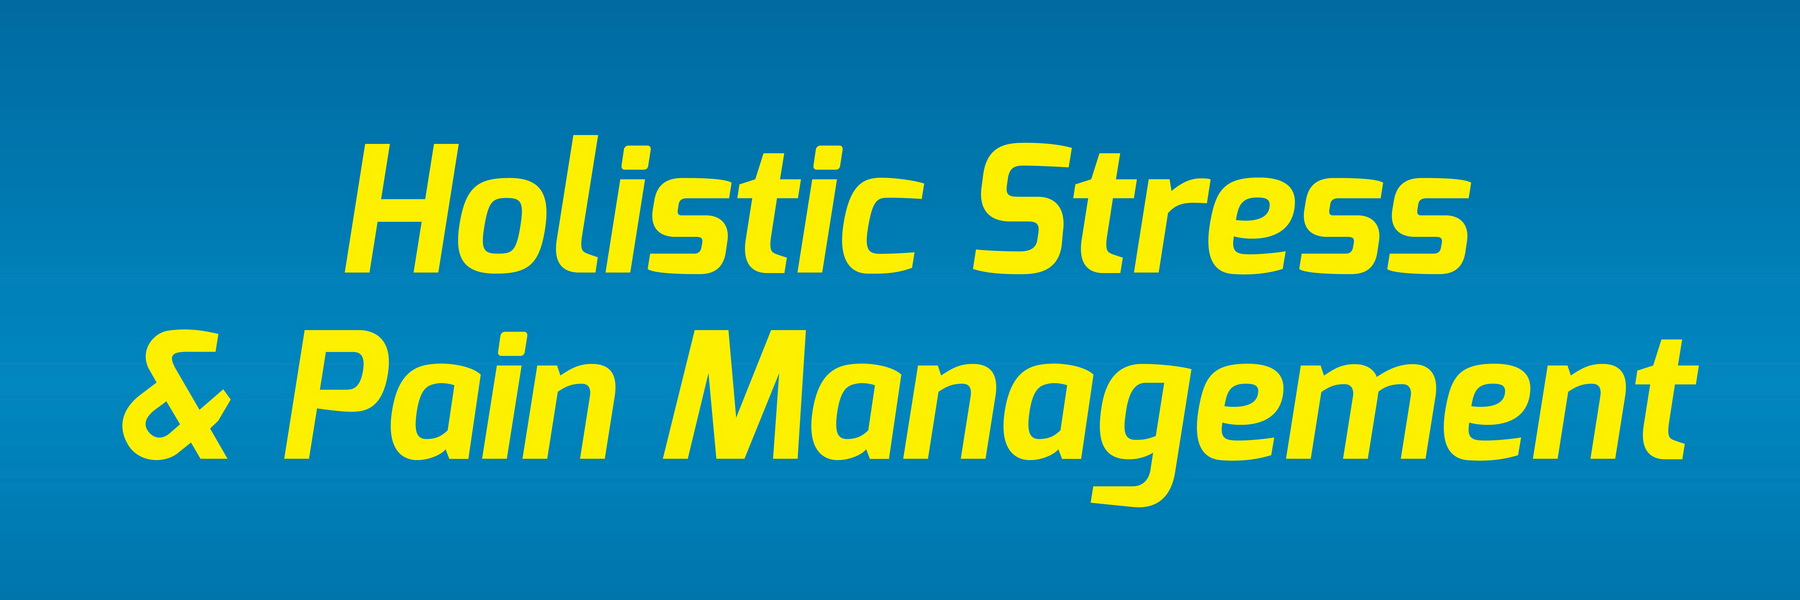 Holistic Stress & Pain Management